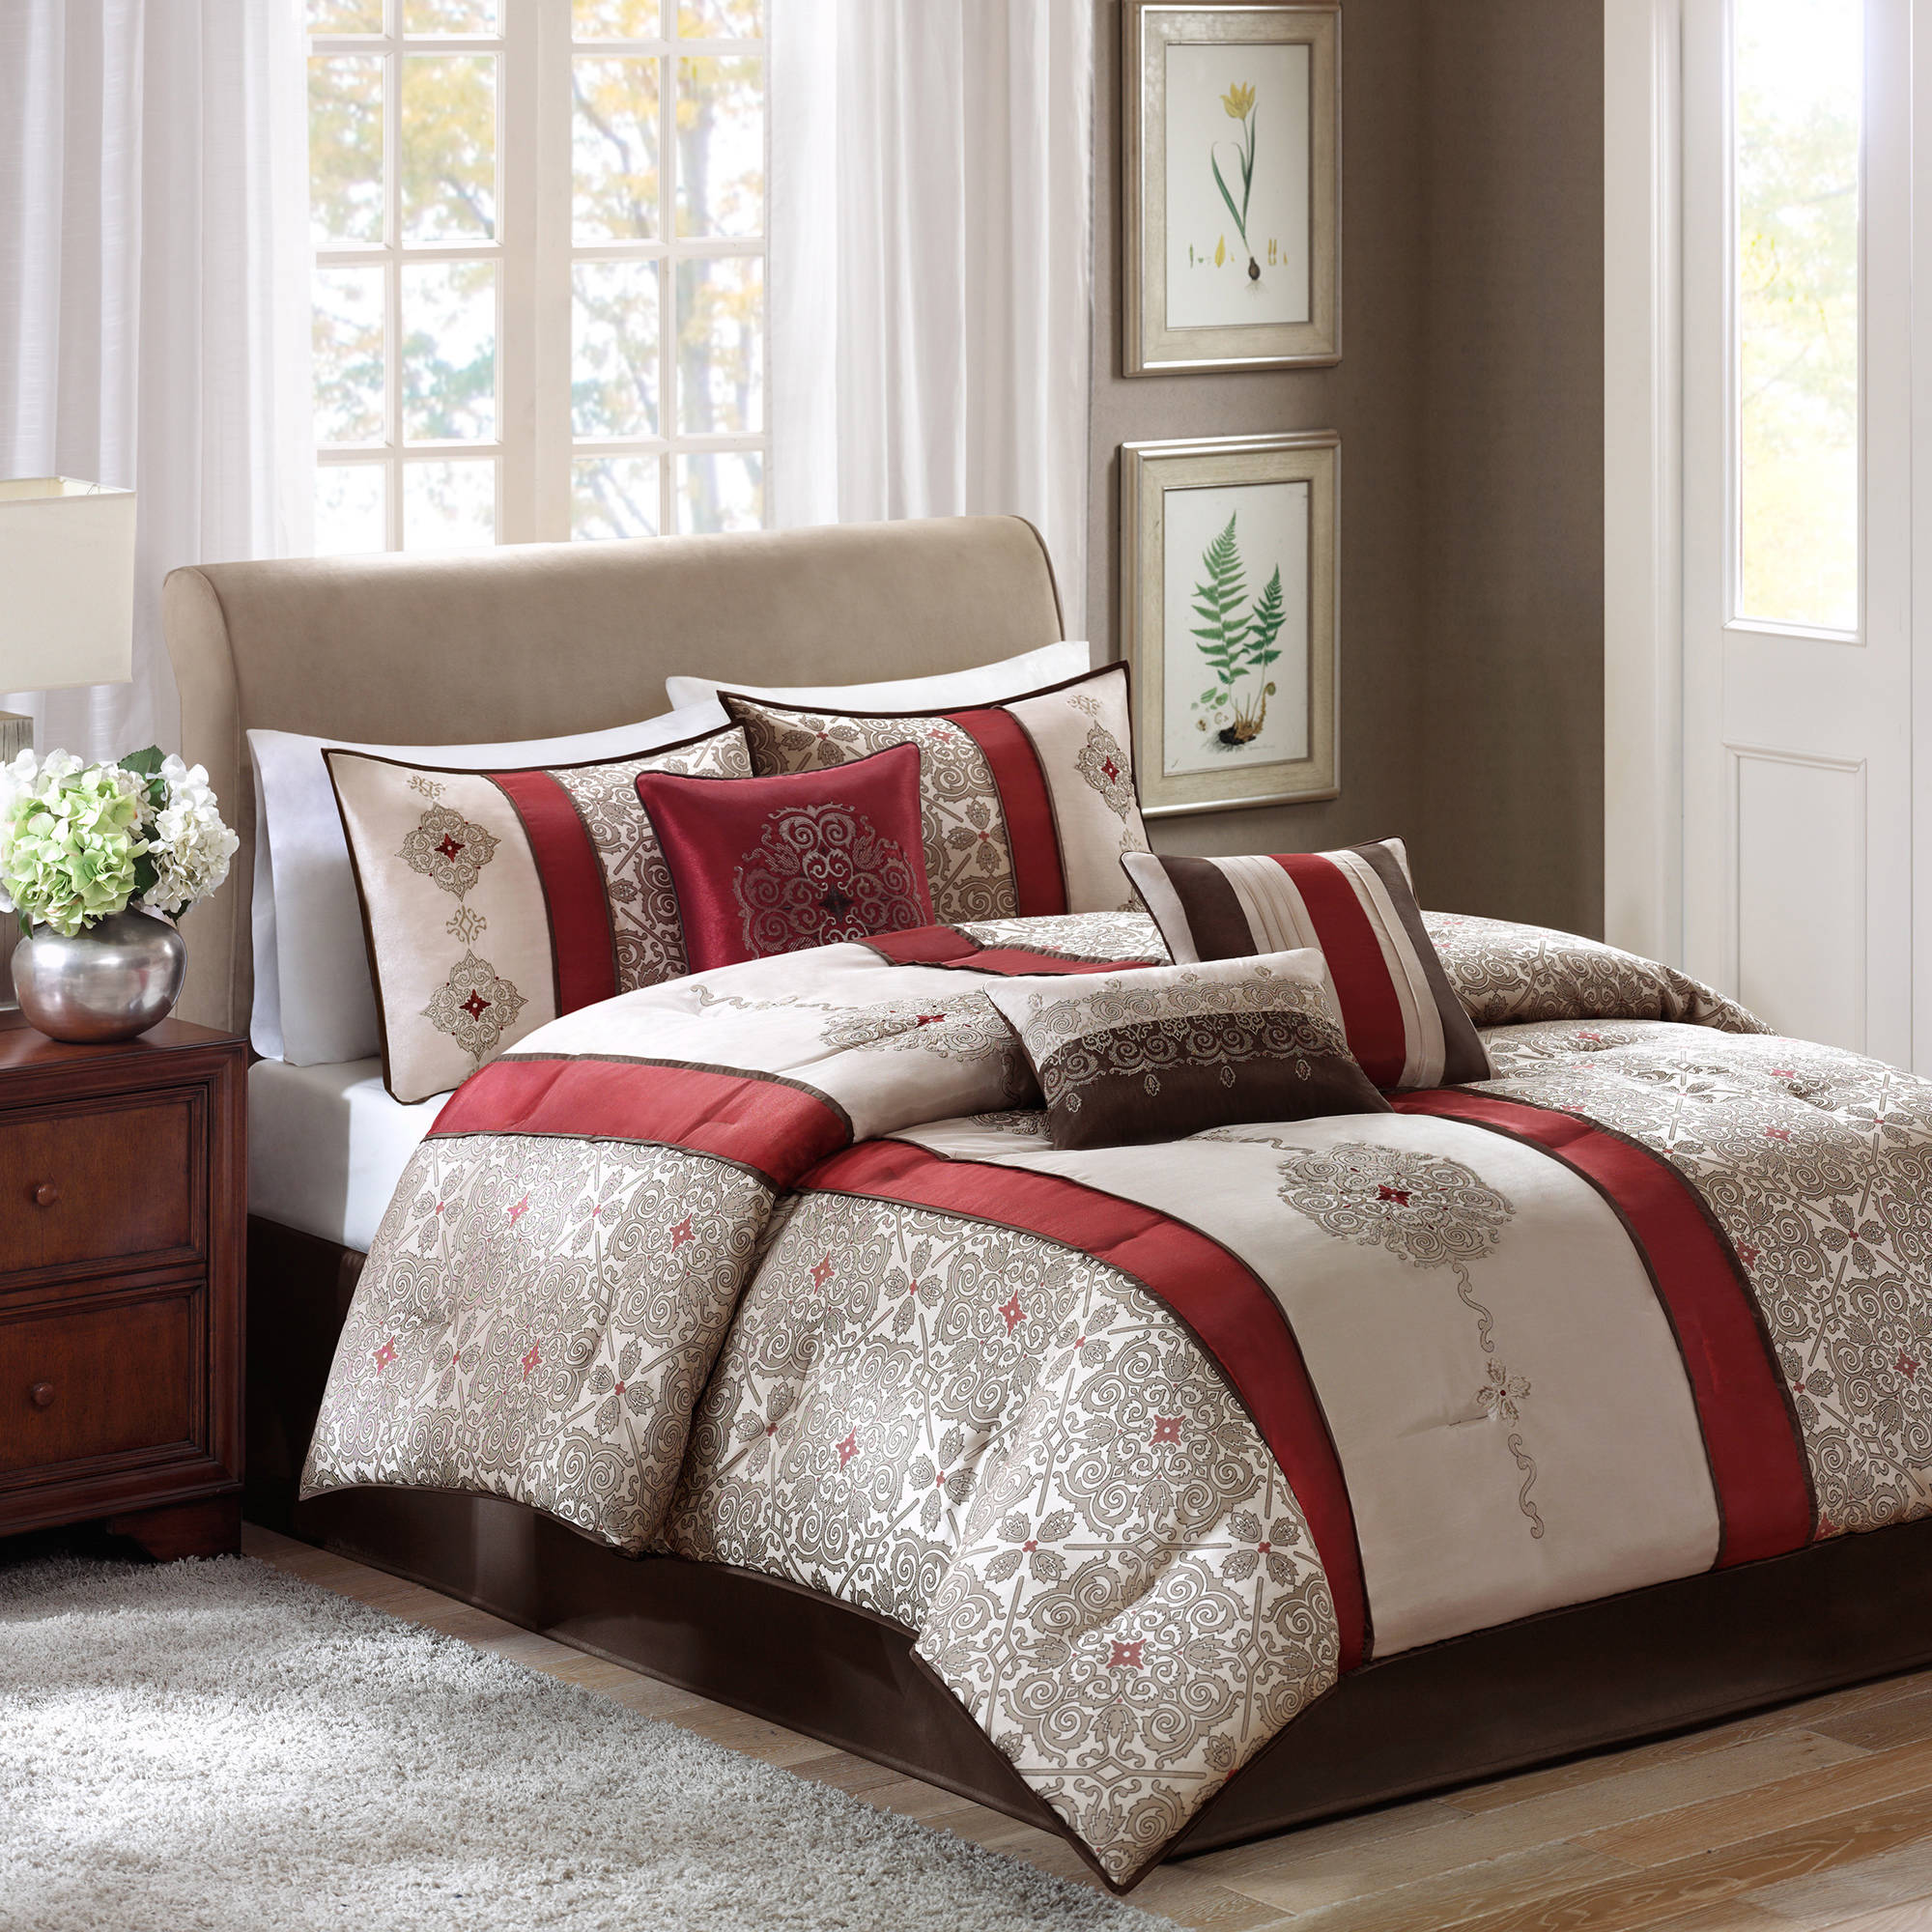 Home Essence Perry 7 Piece Jacquard Comforter Bedding Set